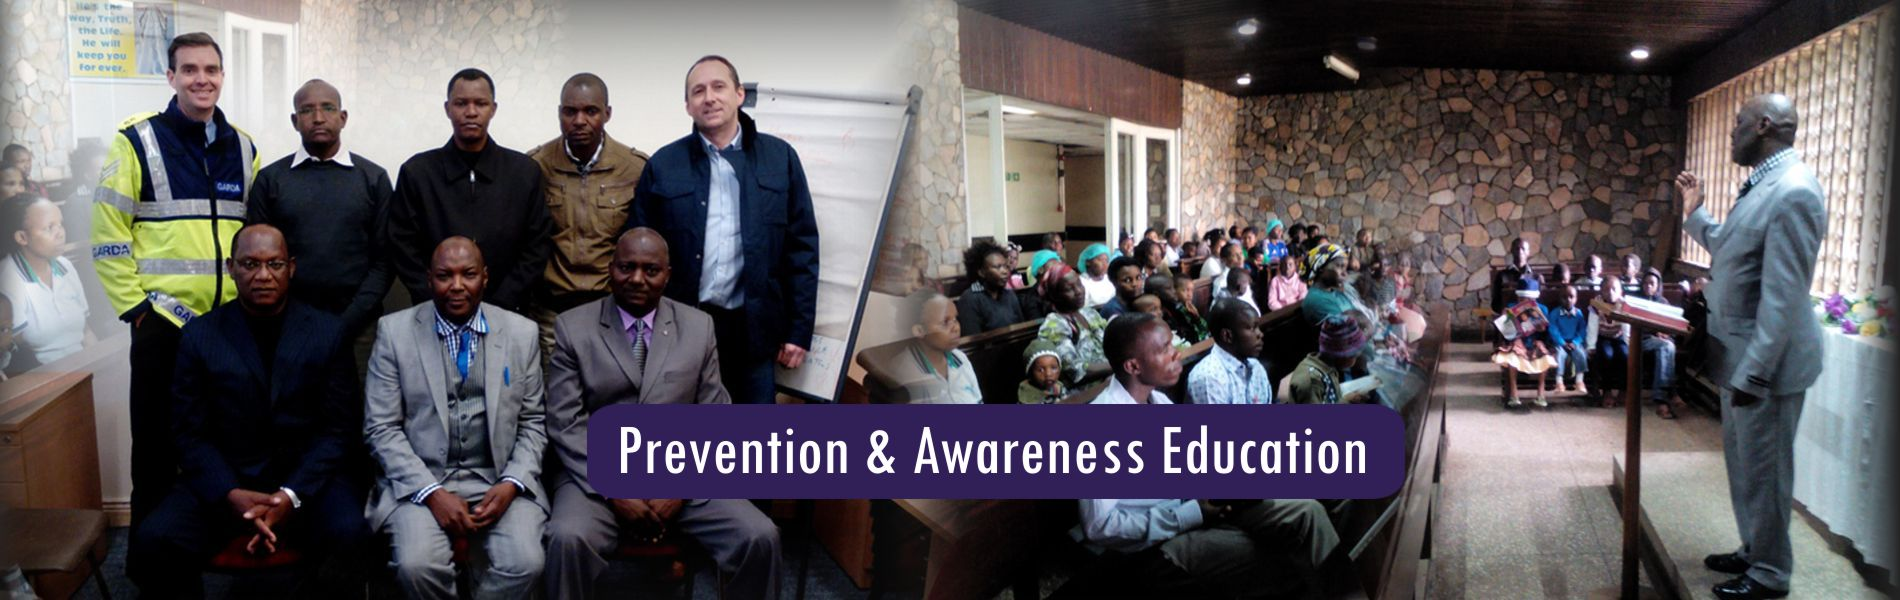 Slider 3 Prevention & Awareness Education